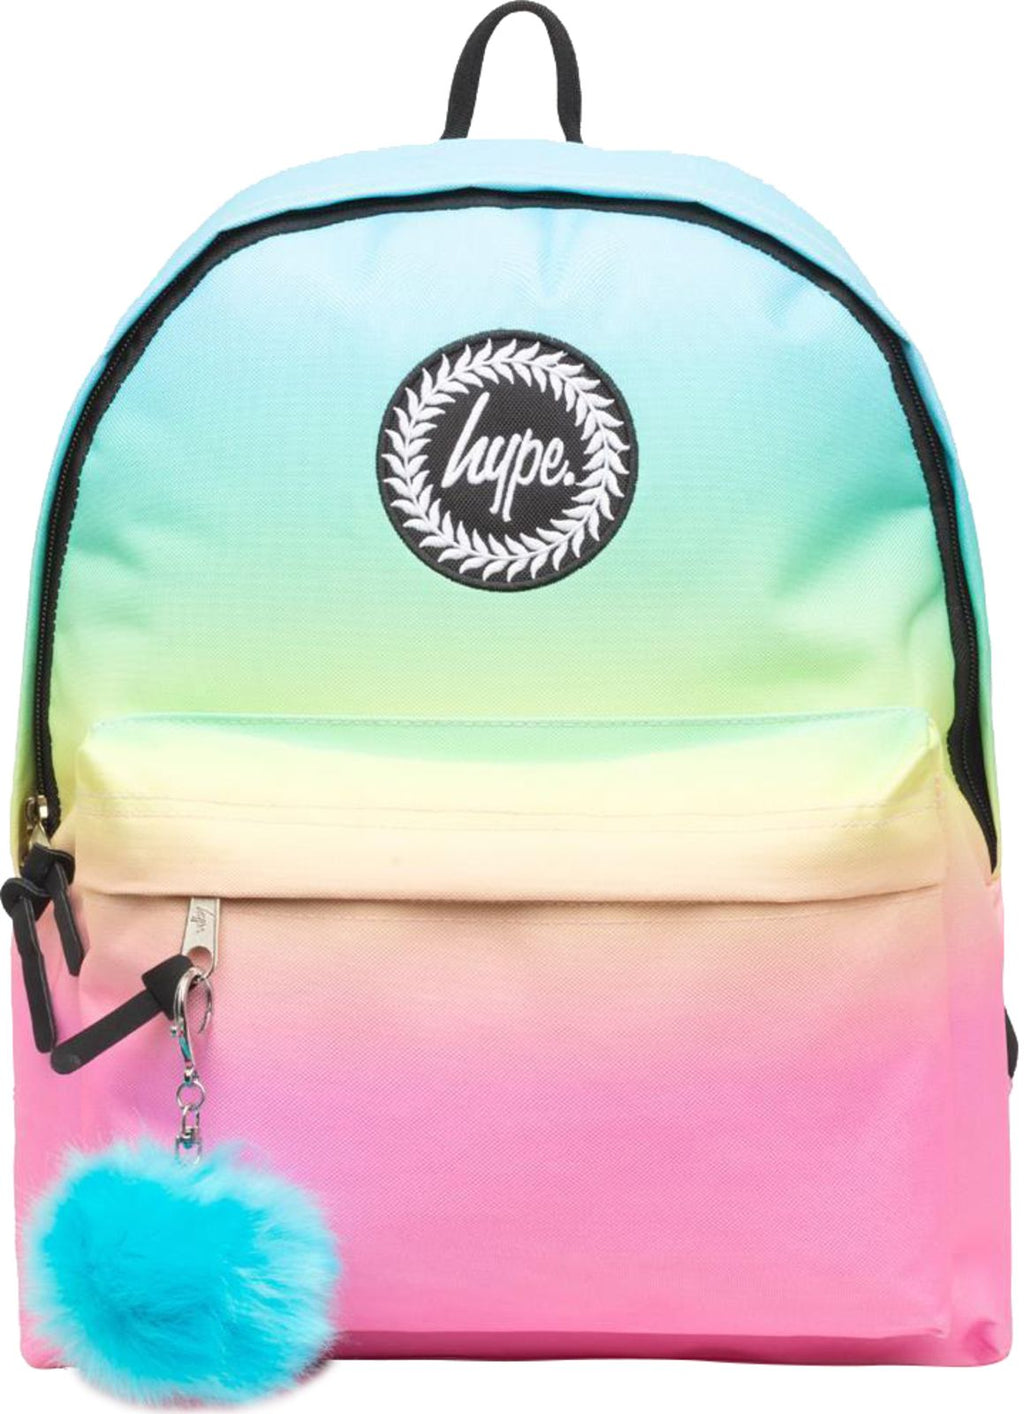 Hype Beach Tyde Dye Backpack Bag Multi